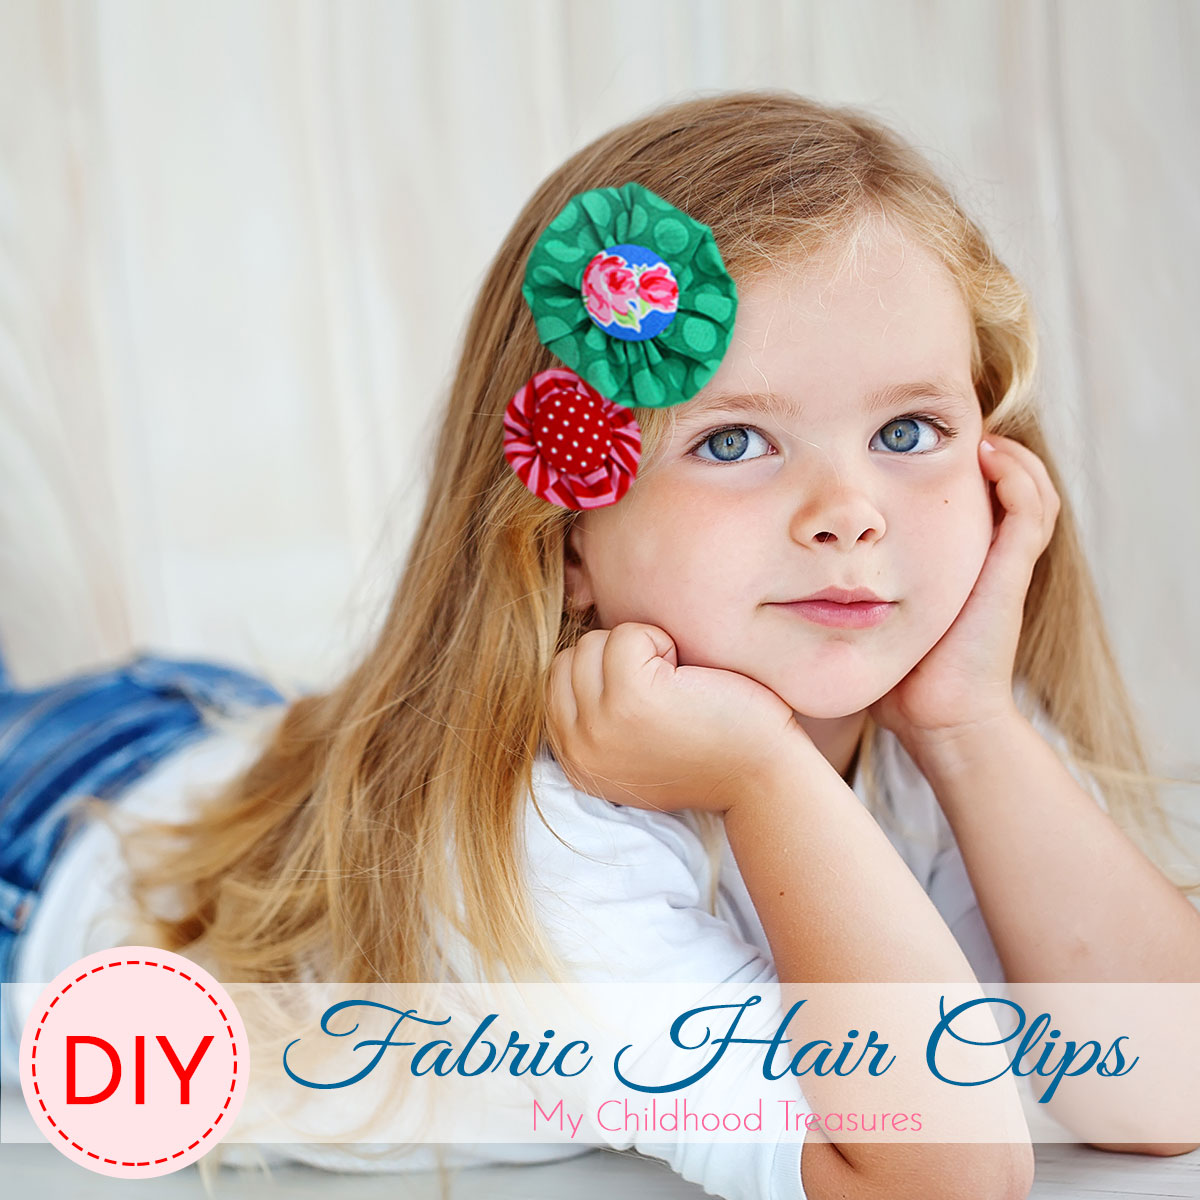 Hair Products offers a full line of hair care products, black hair care products and hair accessories including shampoo, conditioner, clippers, flat irons, hair dryers, hair growth, vitamins, curling irons and many more personal care items.